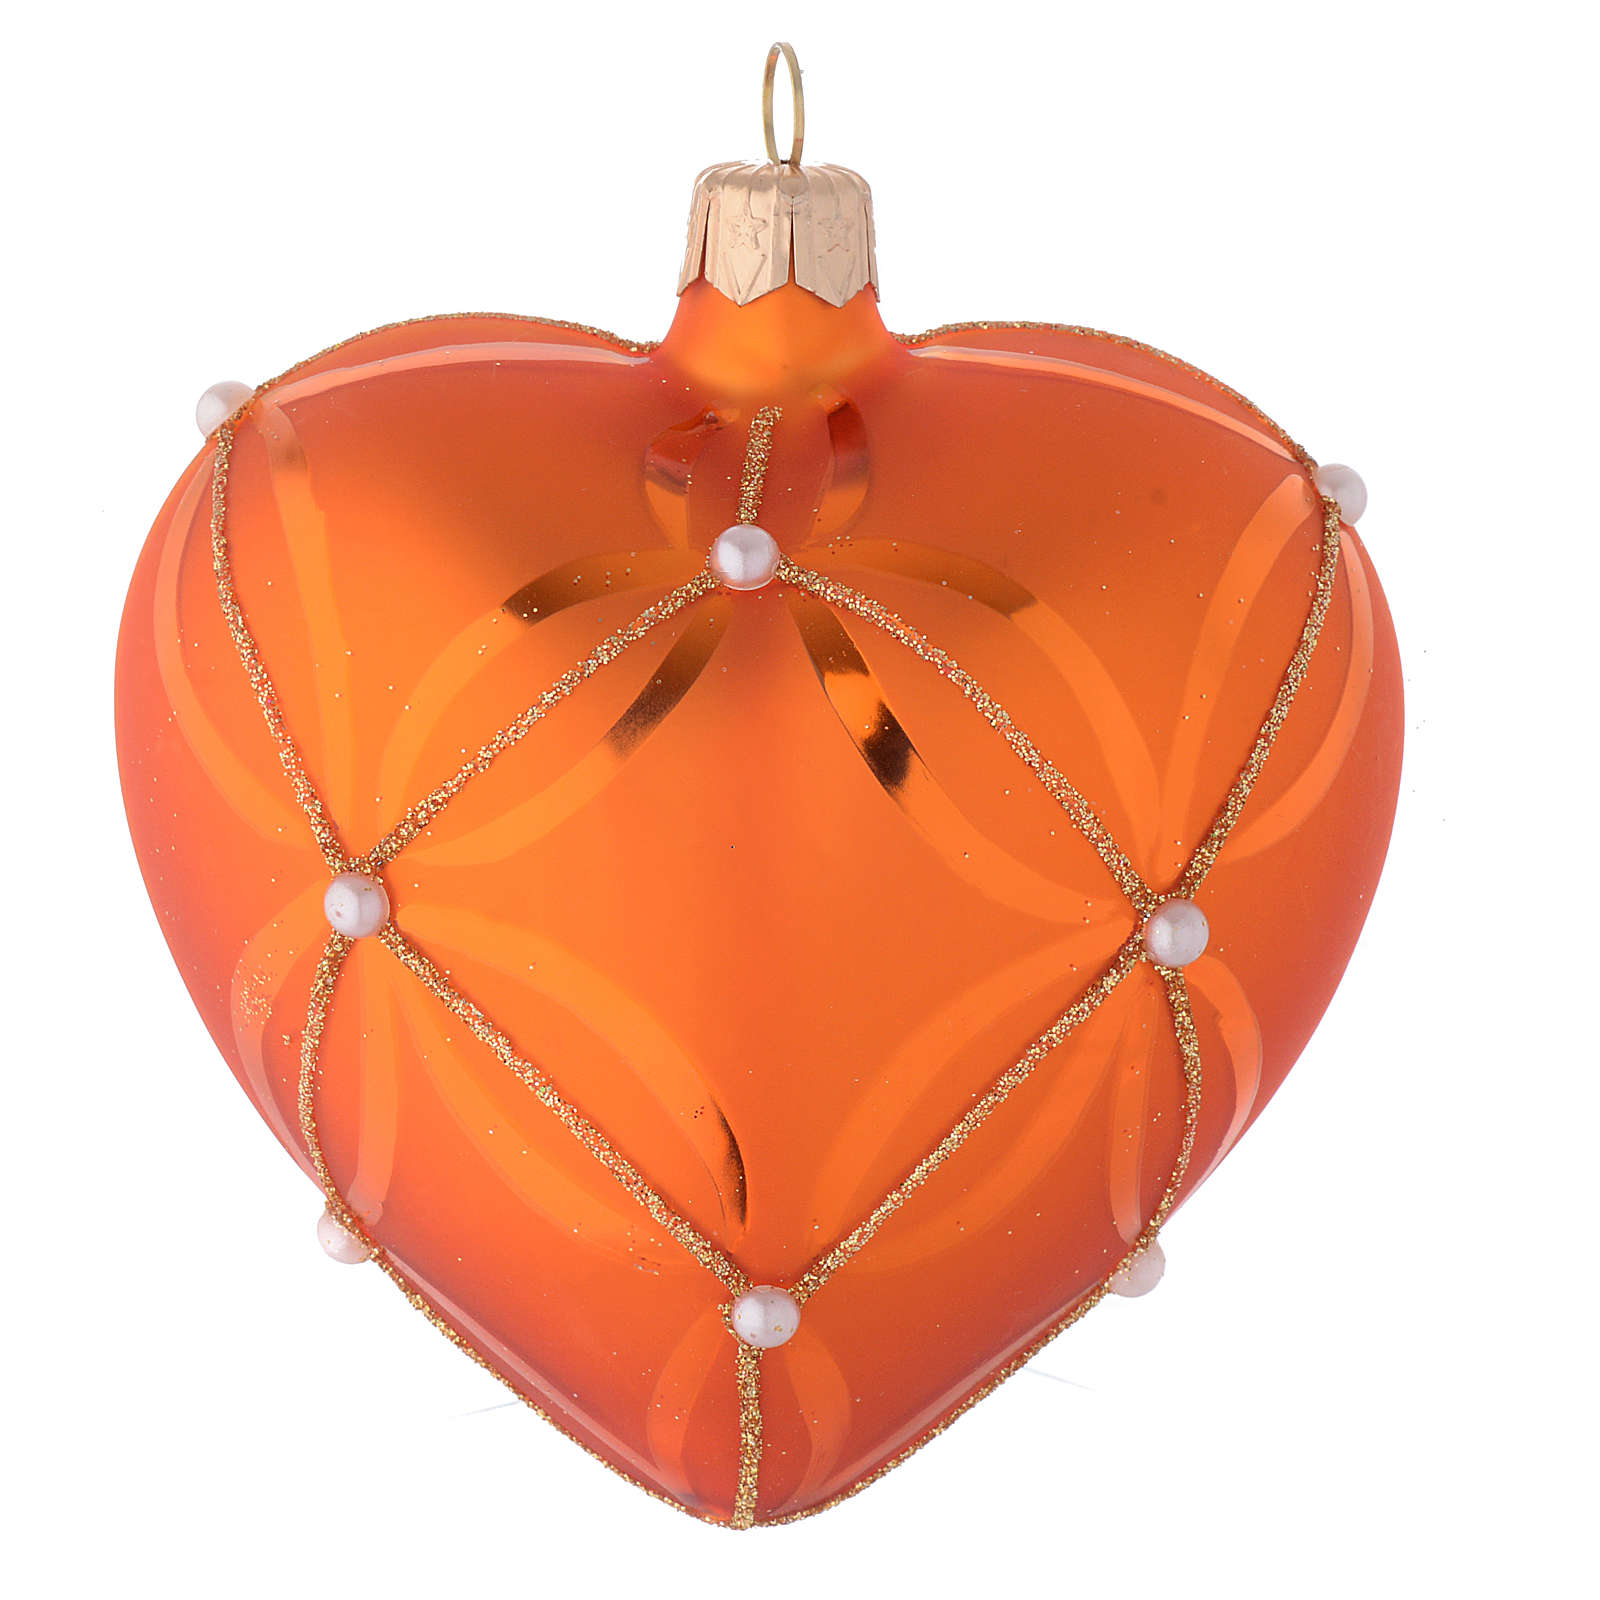 Heart Shaped Bauble in orange blown glass with pearl decoration 100mm 4